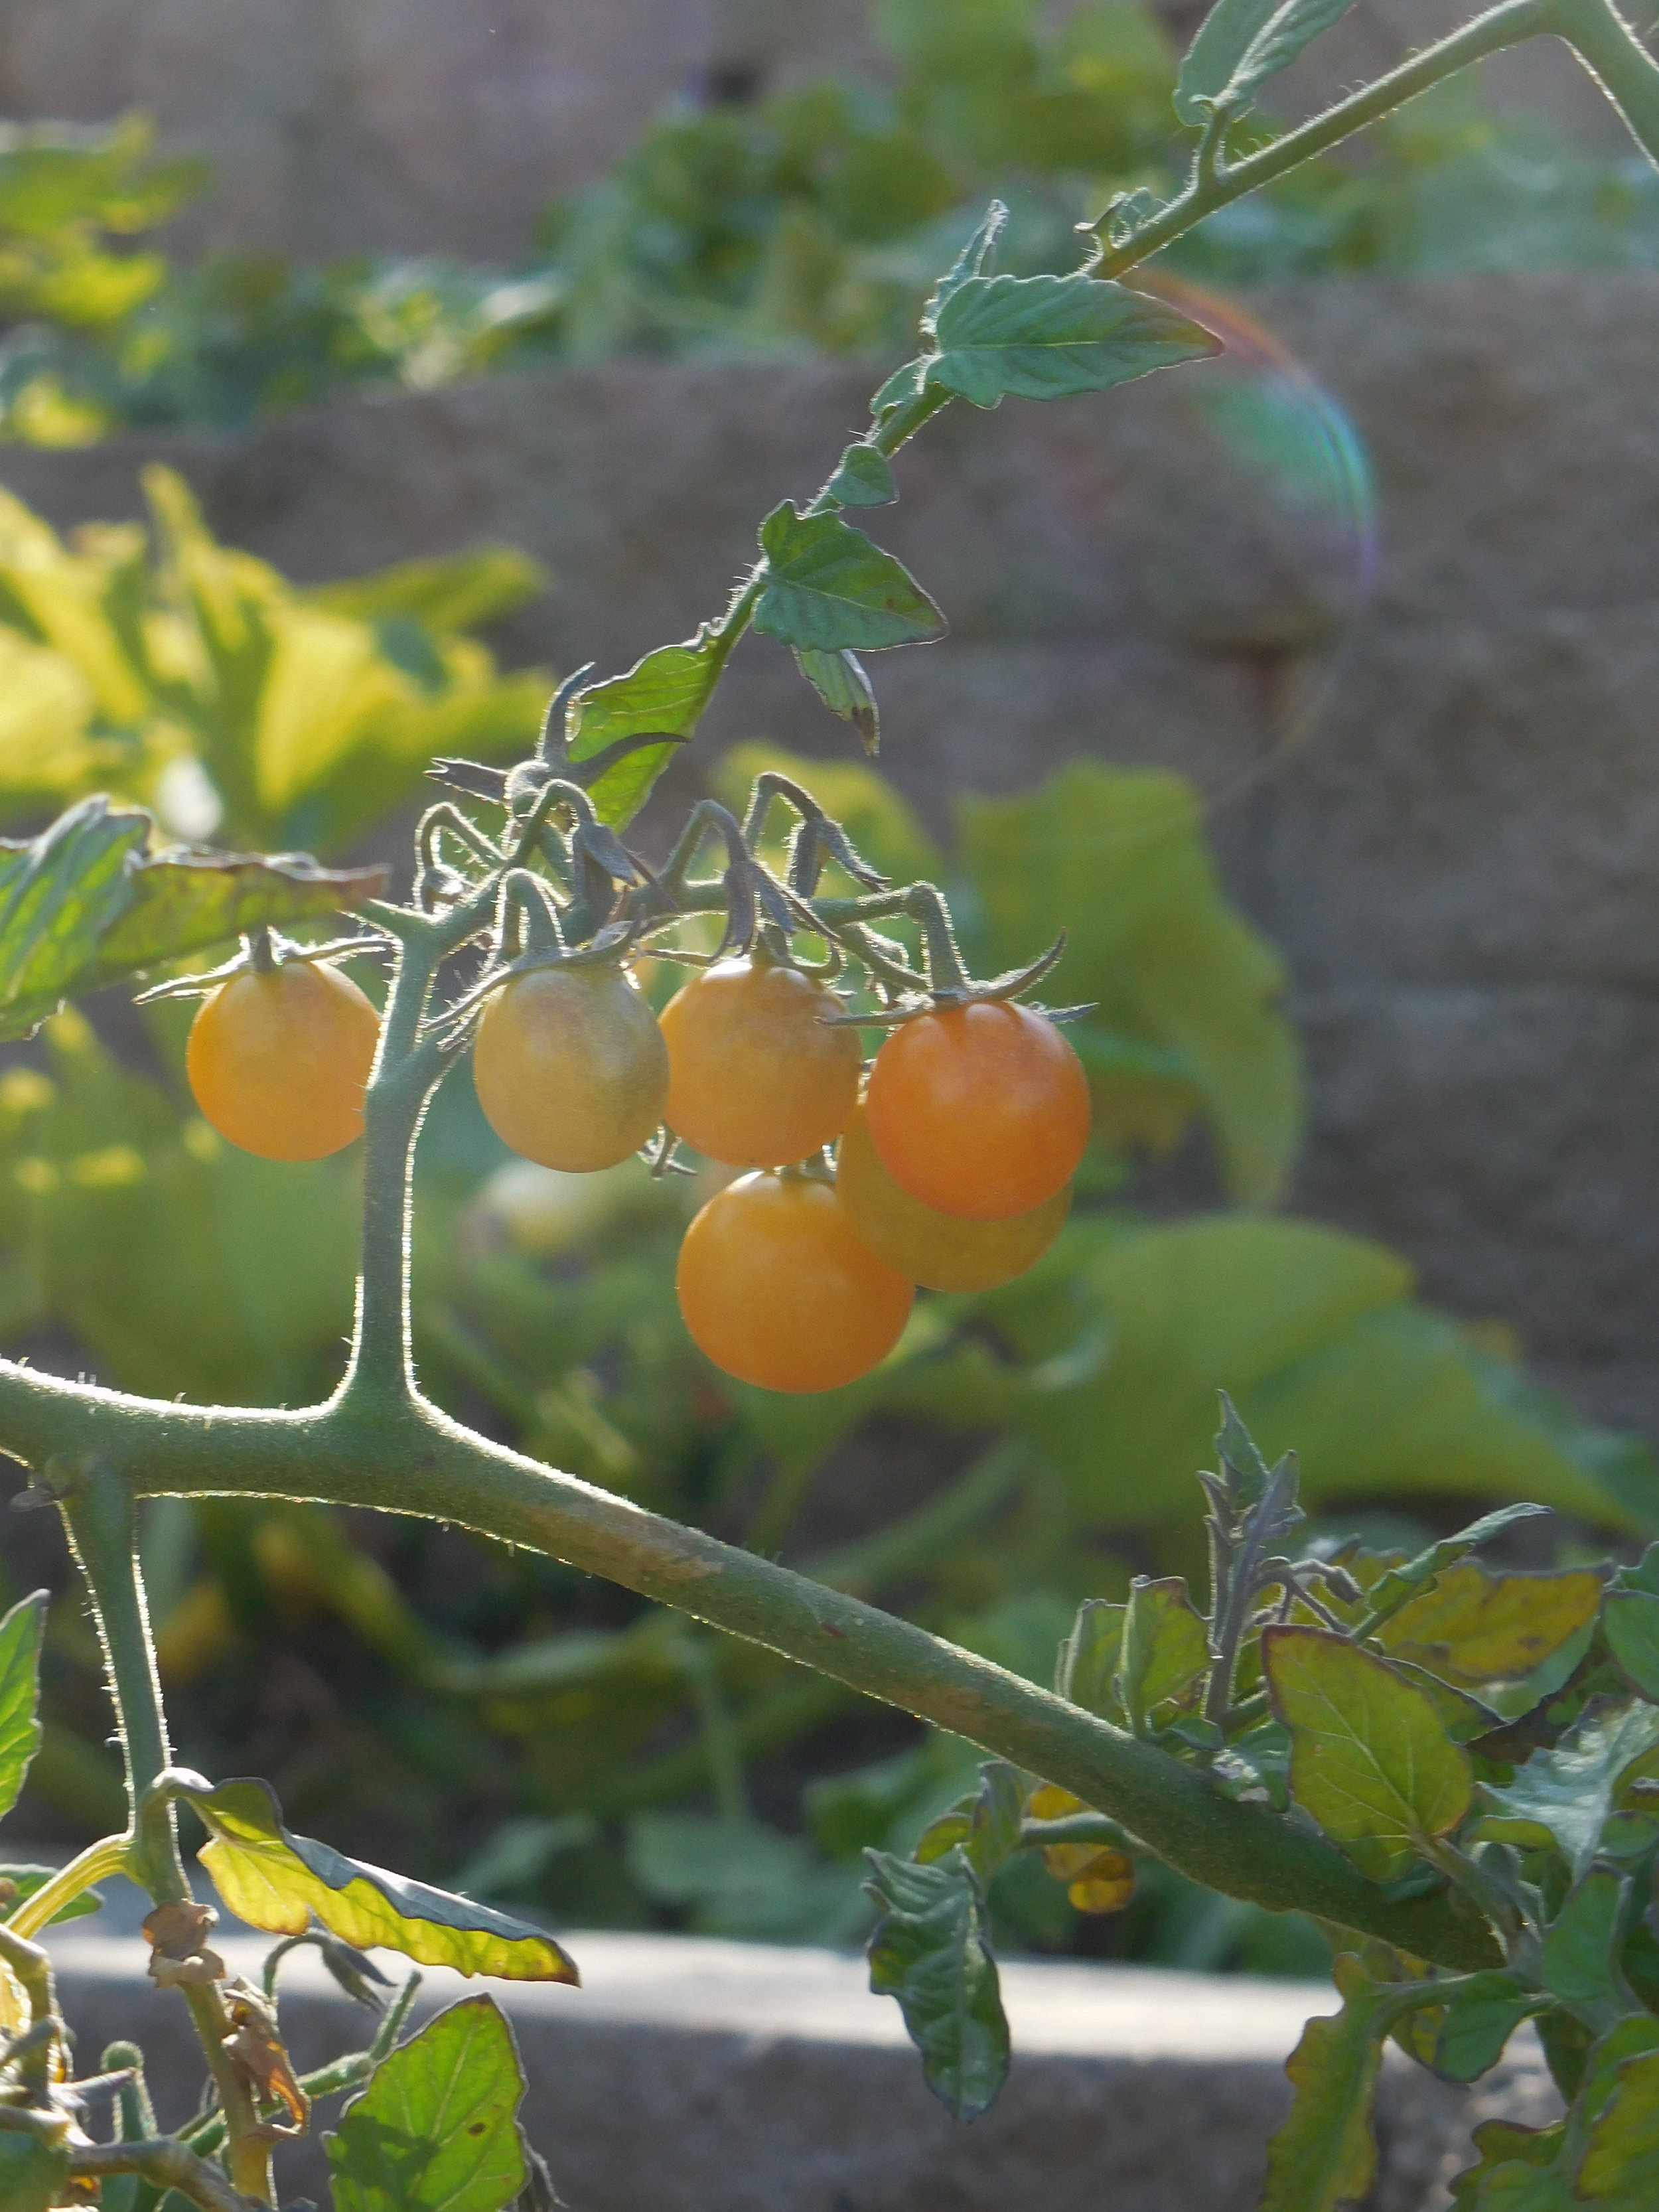 Sun Sugar cherry tomatoes, one of many varieties I started last week. Keeping my eye on the goal, here! These were grown in my Washington state garden.